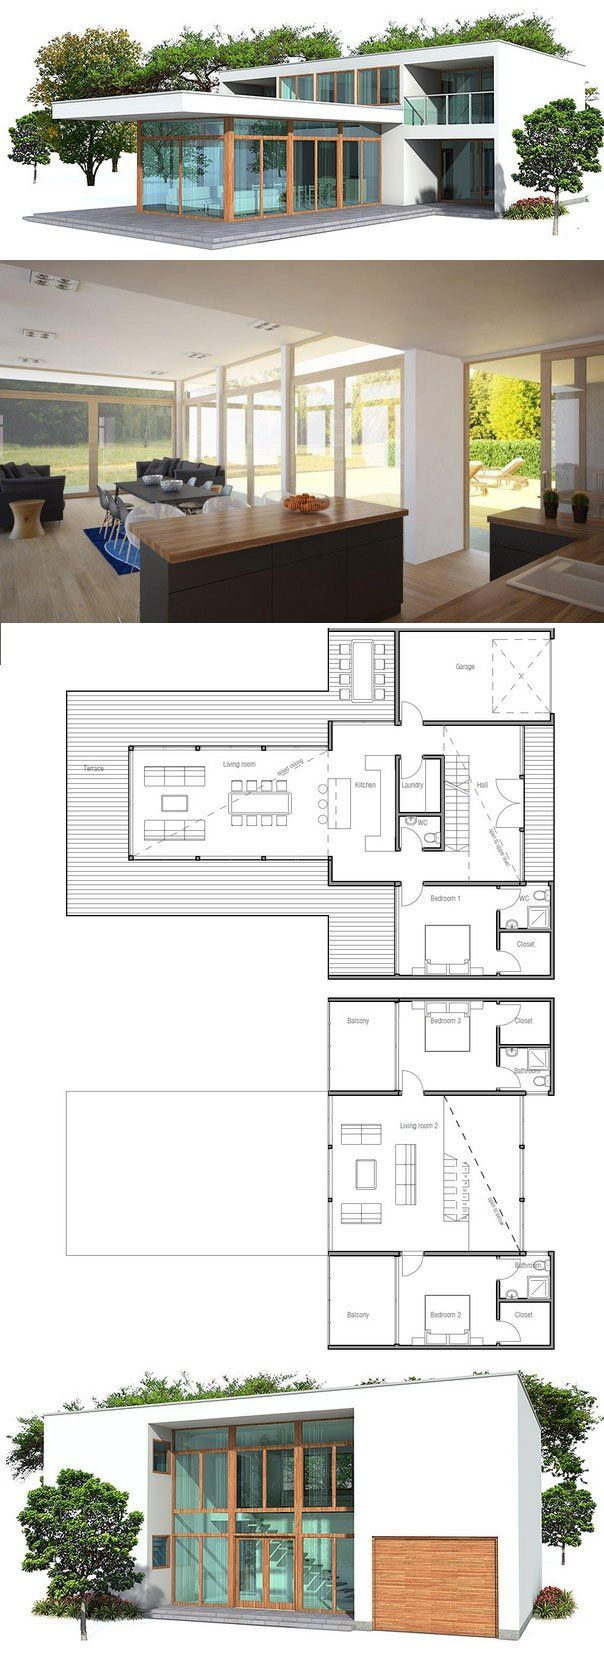 modern house plan floor plan from concepthomecom - Modern House Floor Plans